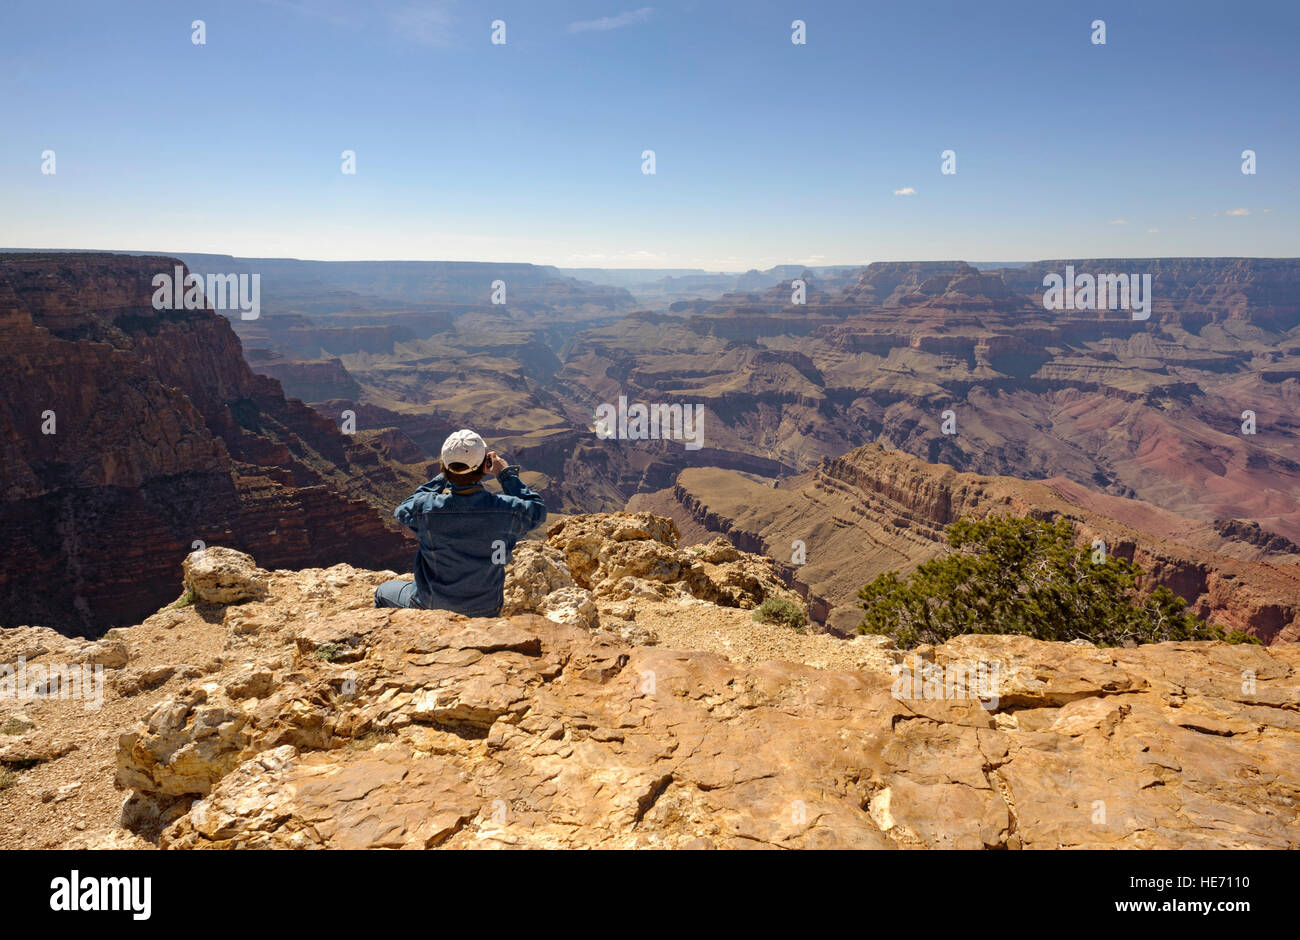 Adventure travel man at edge of the Grand Canyon south rim Pipe Creek Vista taking photo, Arizona USA rear view - Stock Image